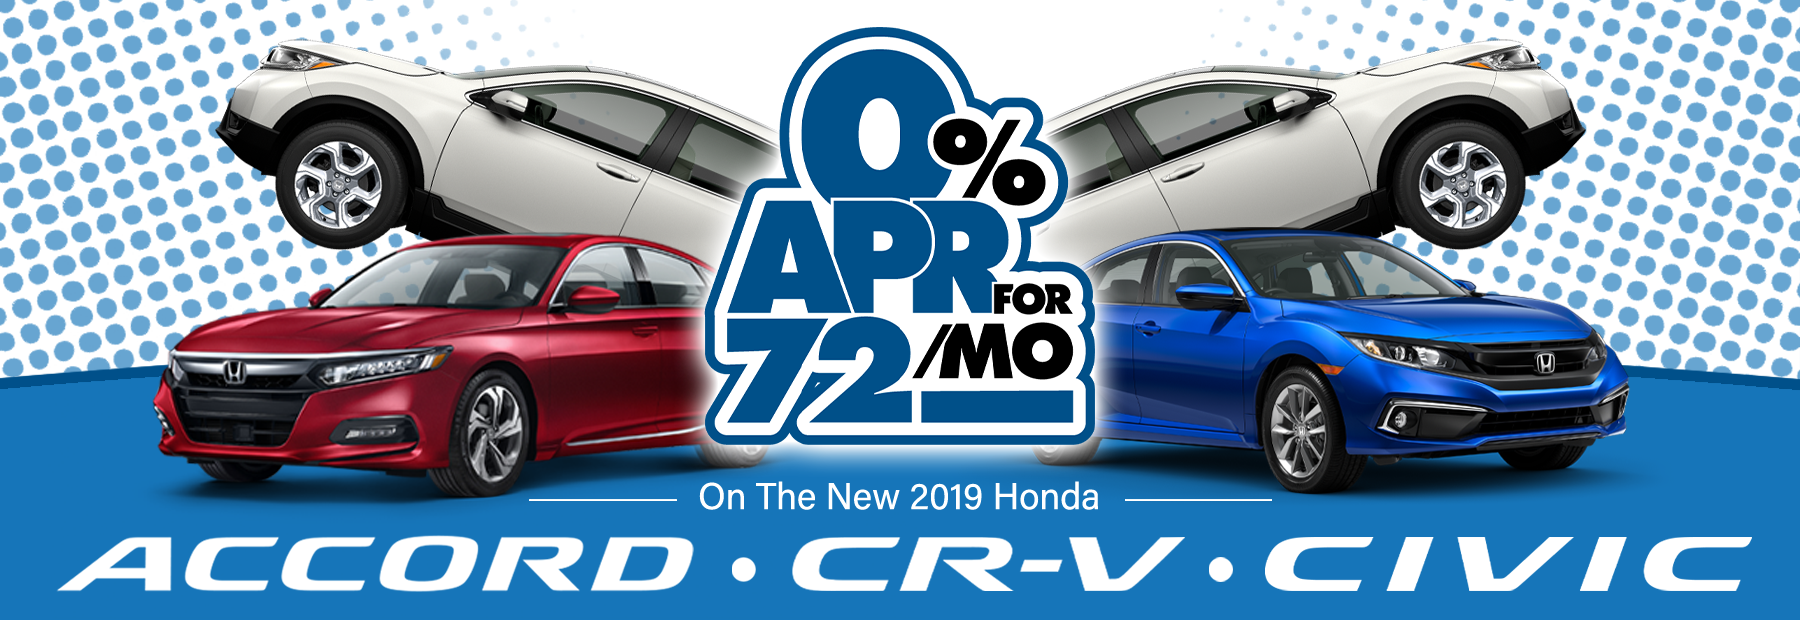 Honda Financial Services Account Management >> Performance Honda New Honda Sales Service Route 4 In Fairfield Oh